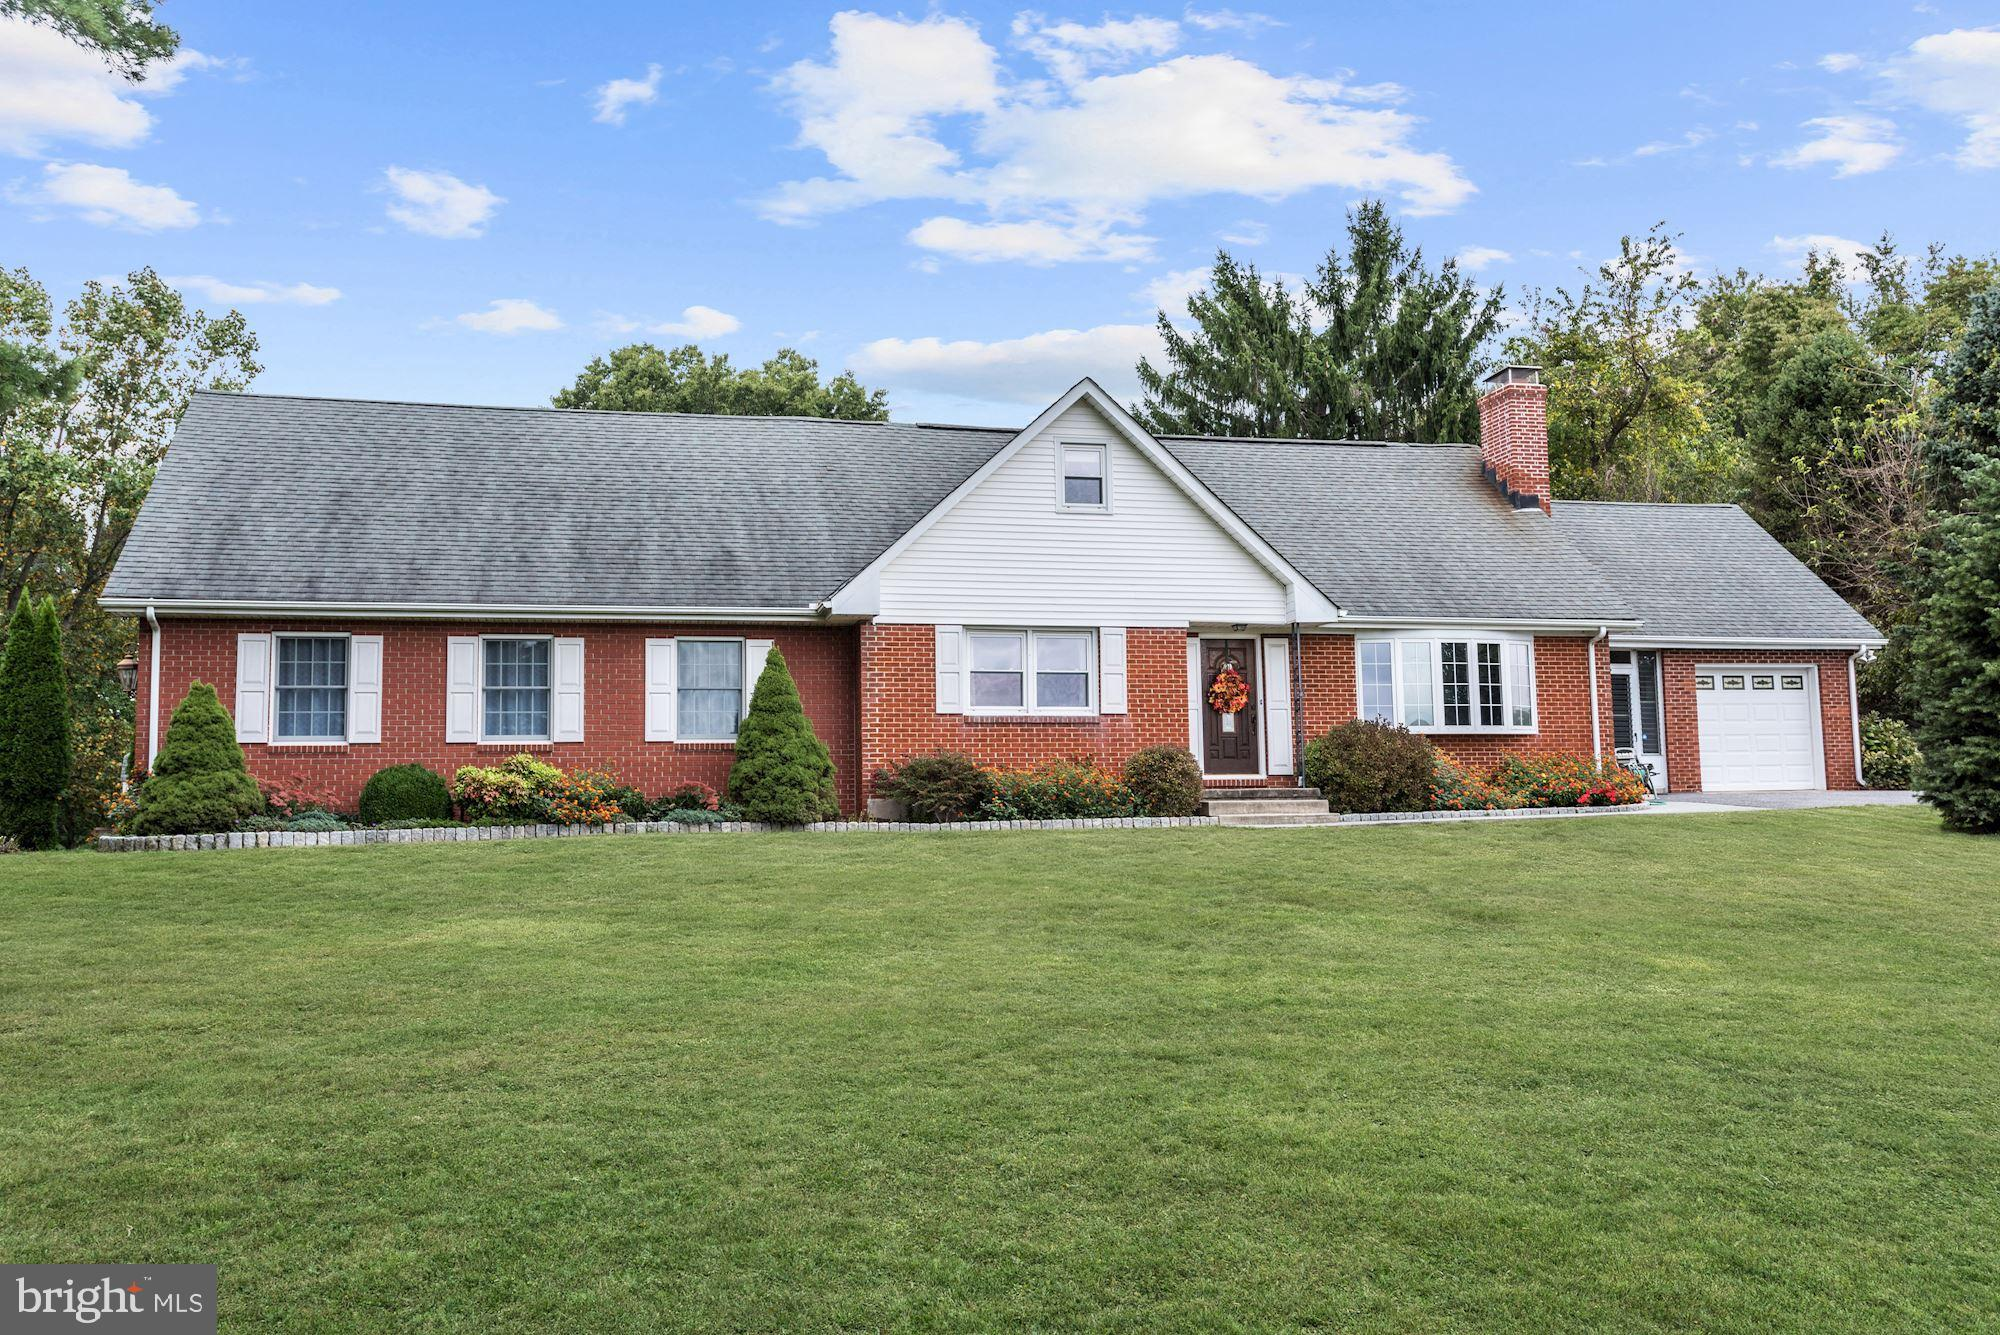 11628 CAMP CONE ROAD, GLEN ARM, MD 21057